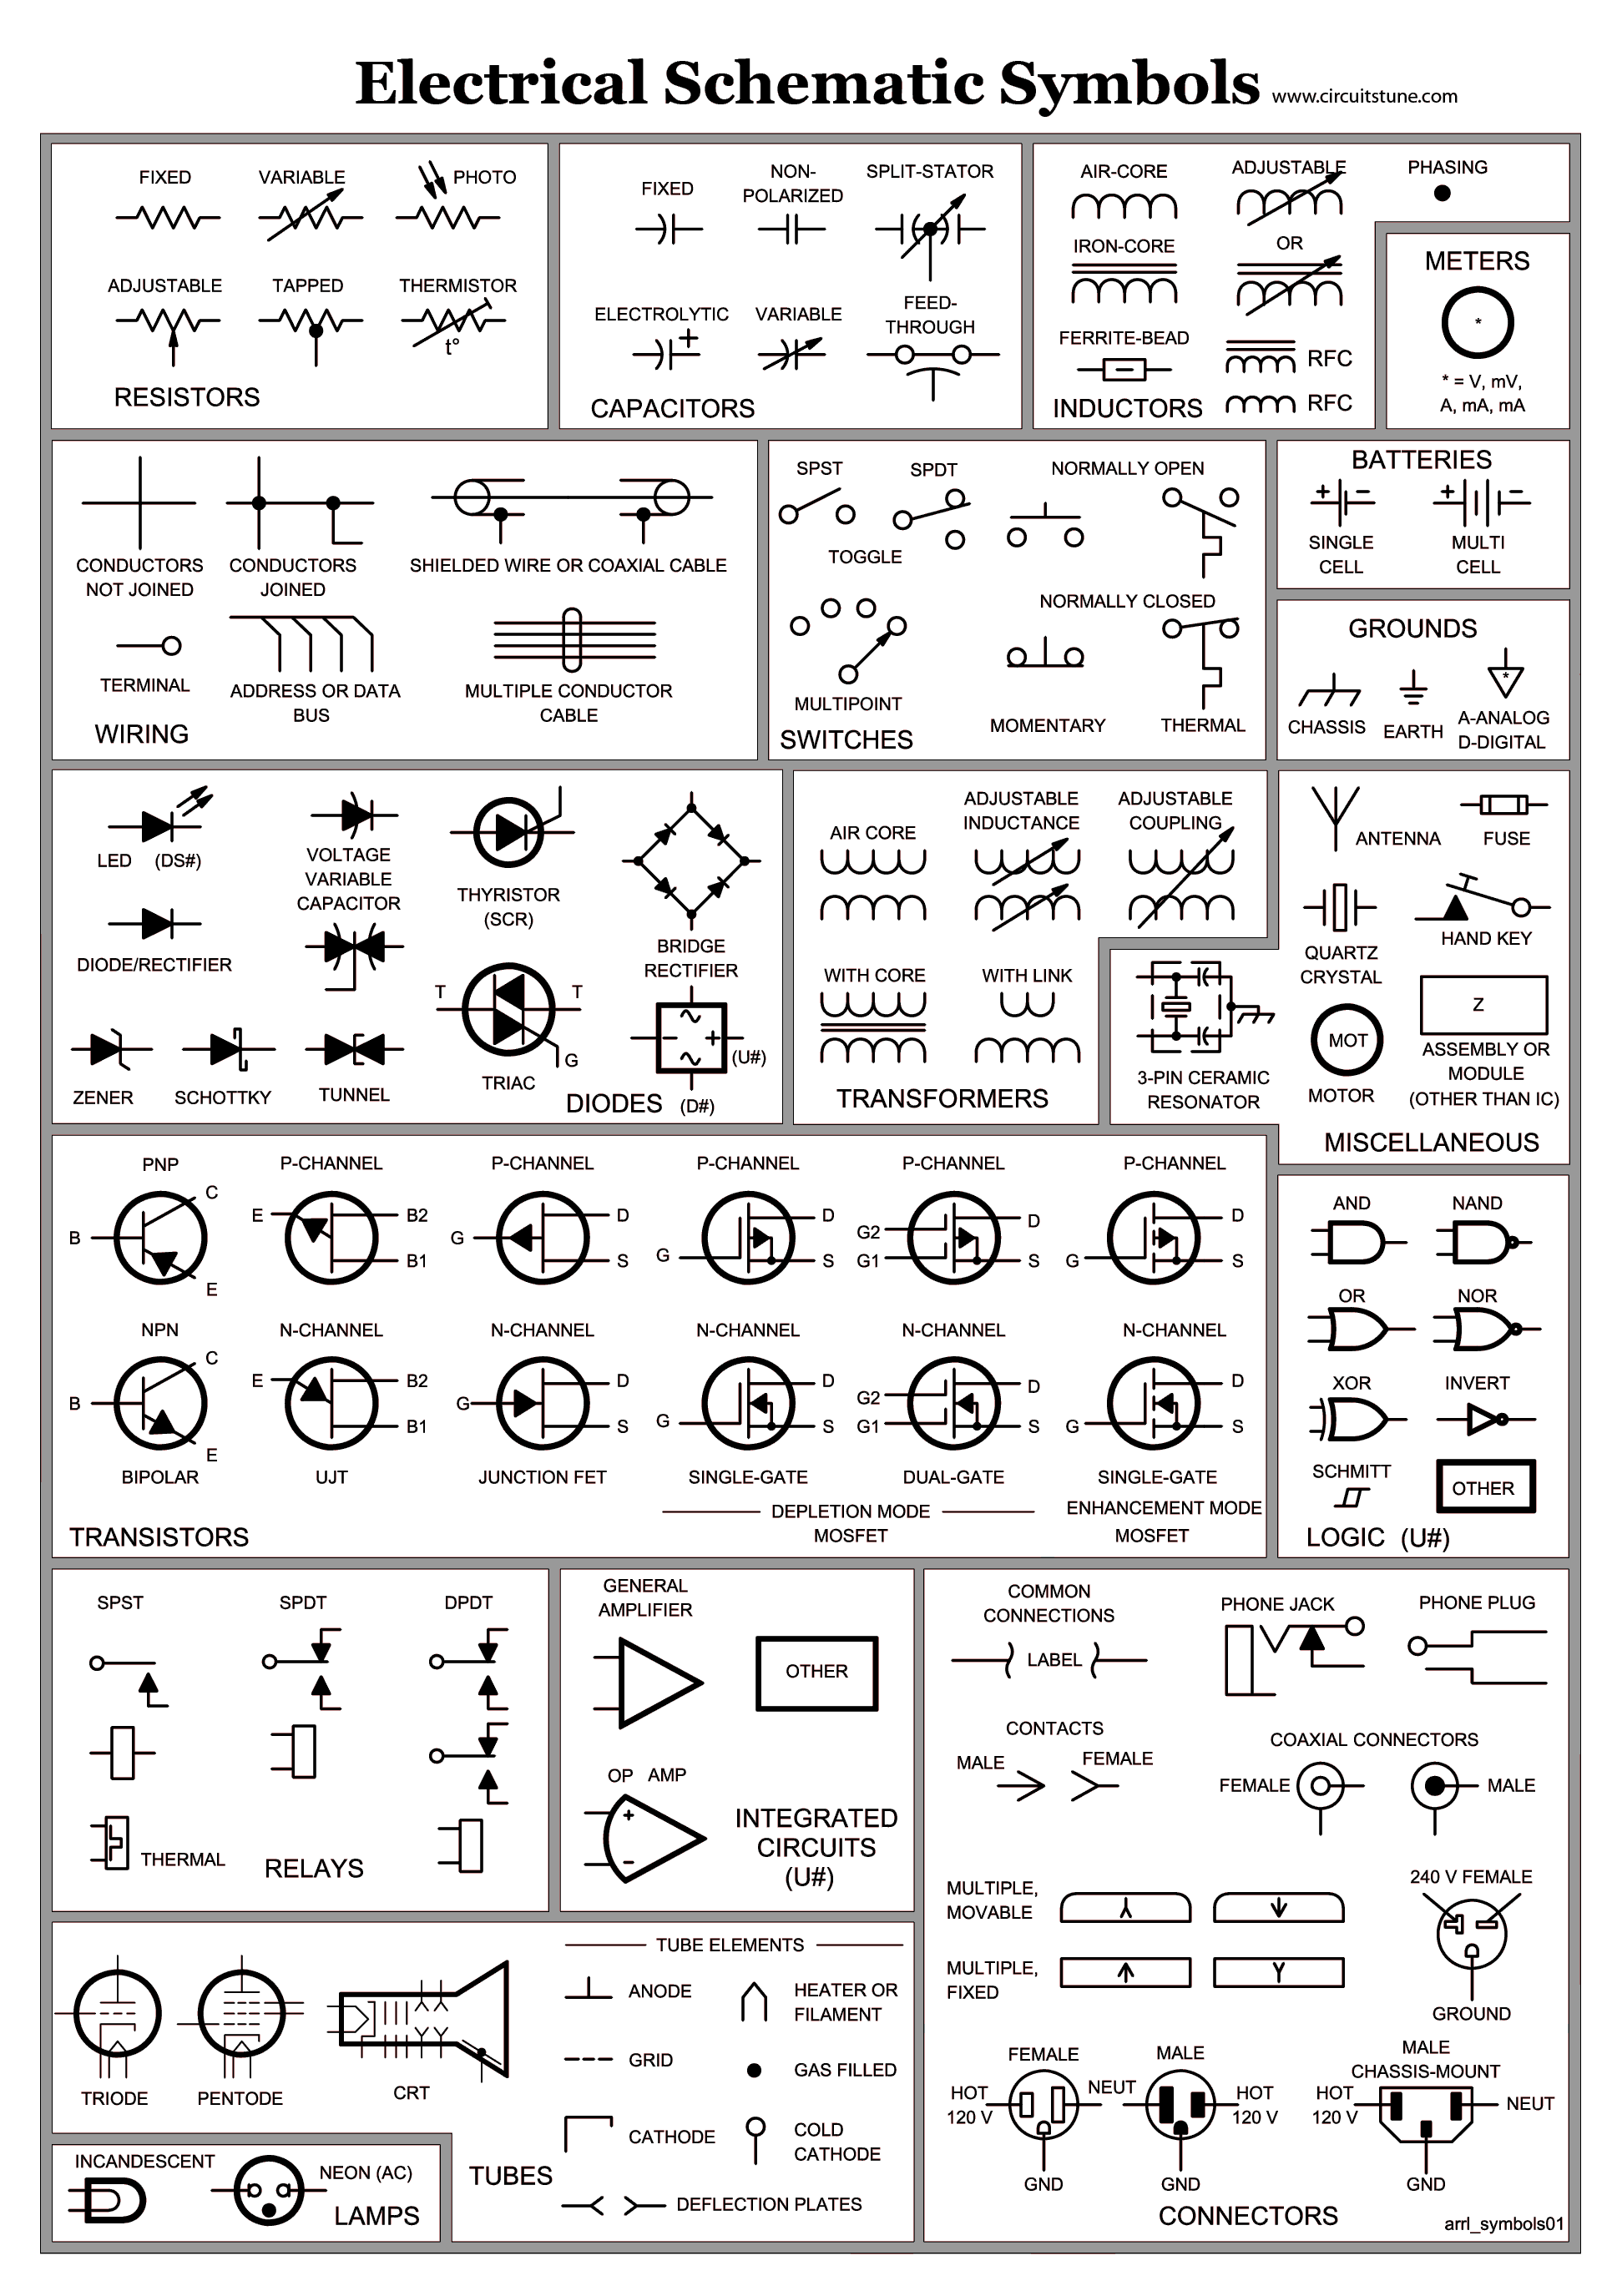 electrical schematic symbols wire diagram symbols automotive wiring rh pinterest com Electrical Schematic Symbols Electrical Schematic Symbols